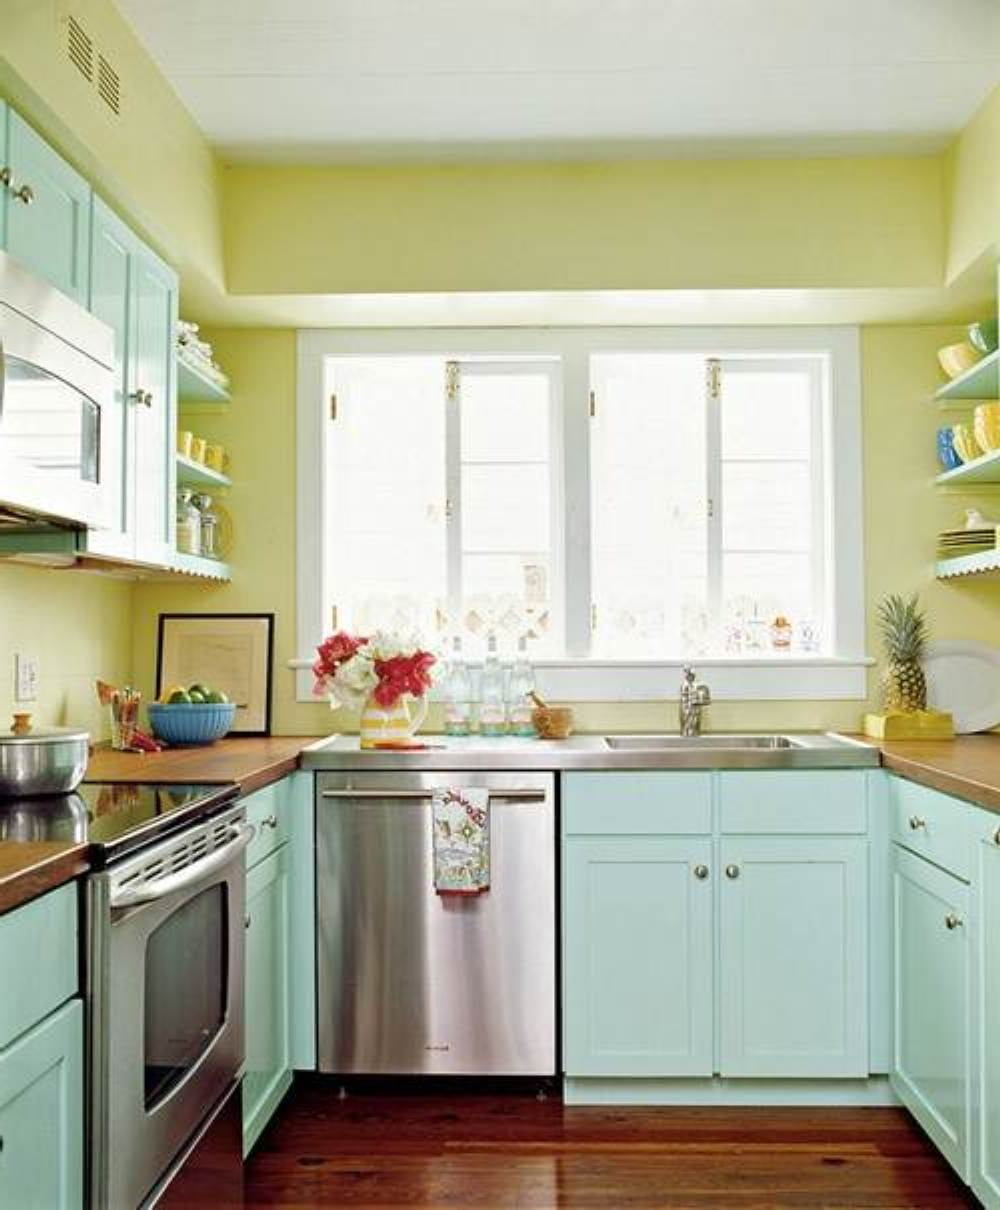 Small Kitchen Decorating Ideas: 57+ Small Kitchen Ideas That Prove Size Doesn't Matter